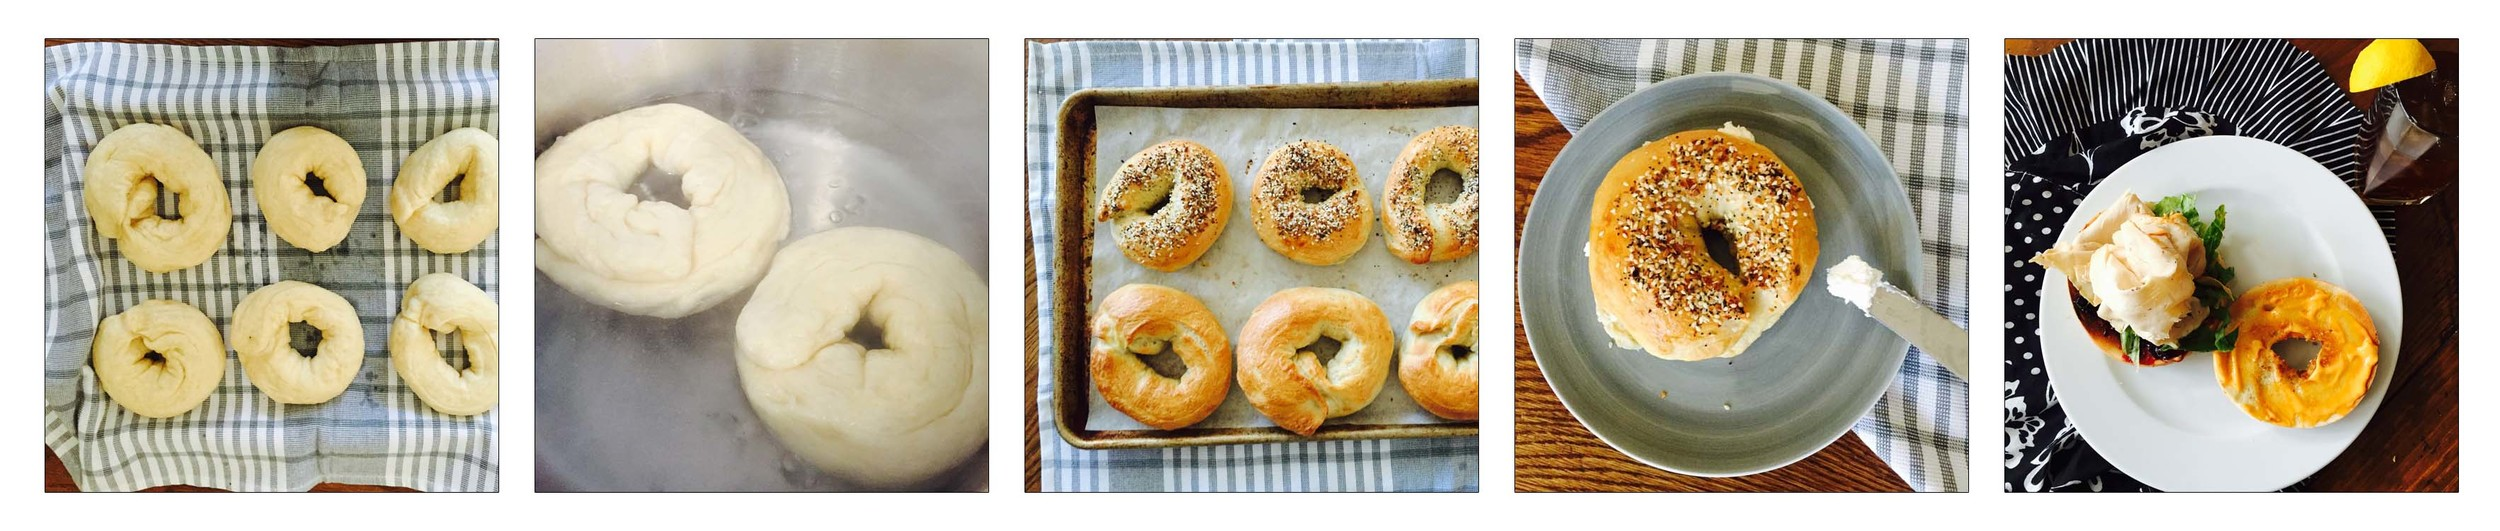 BaGELS, STEp BY STep.